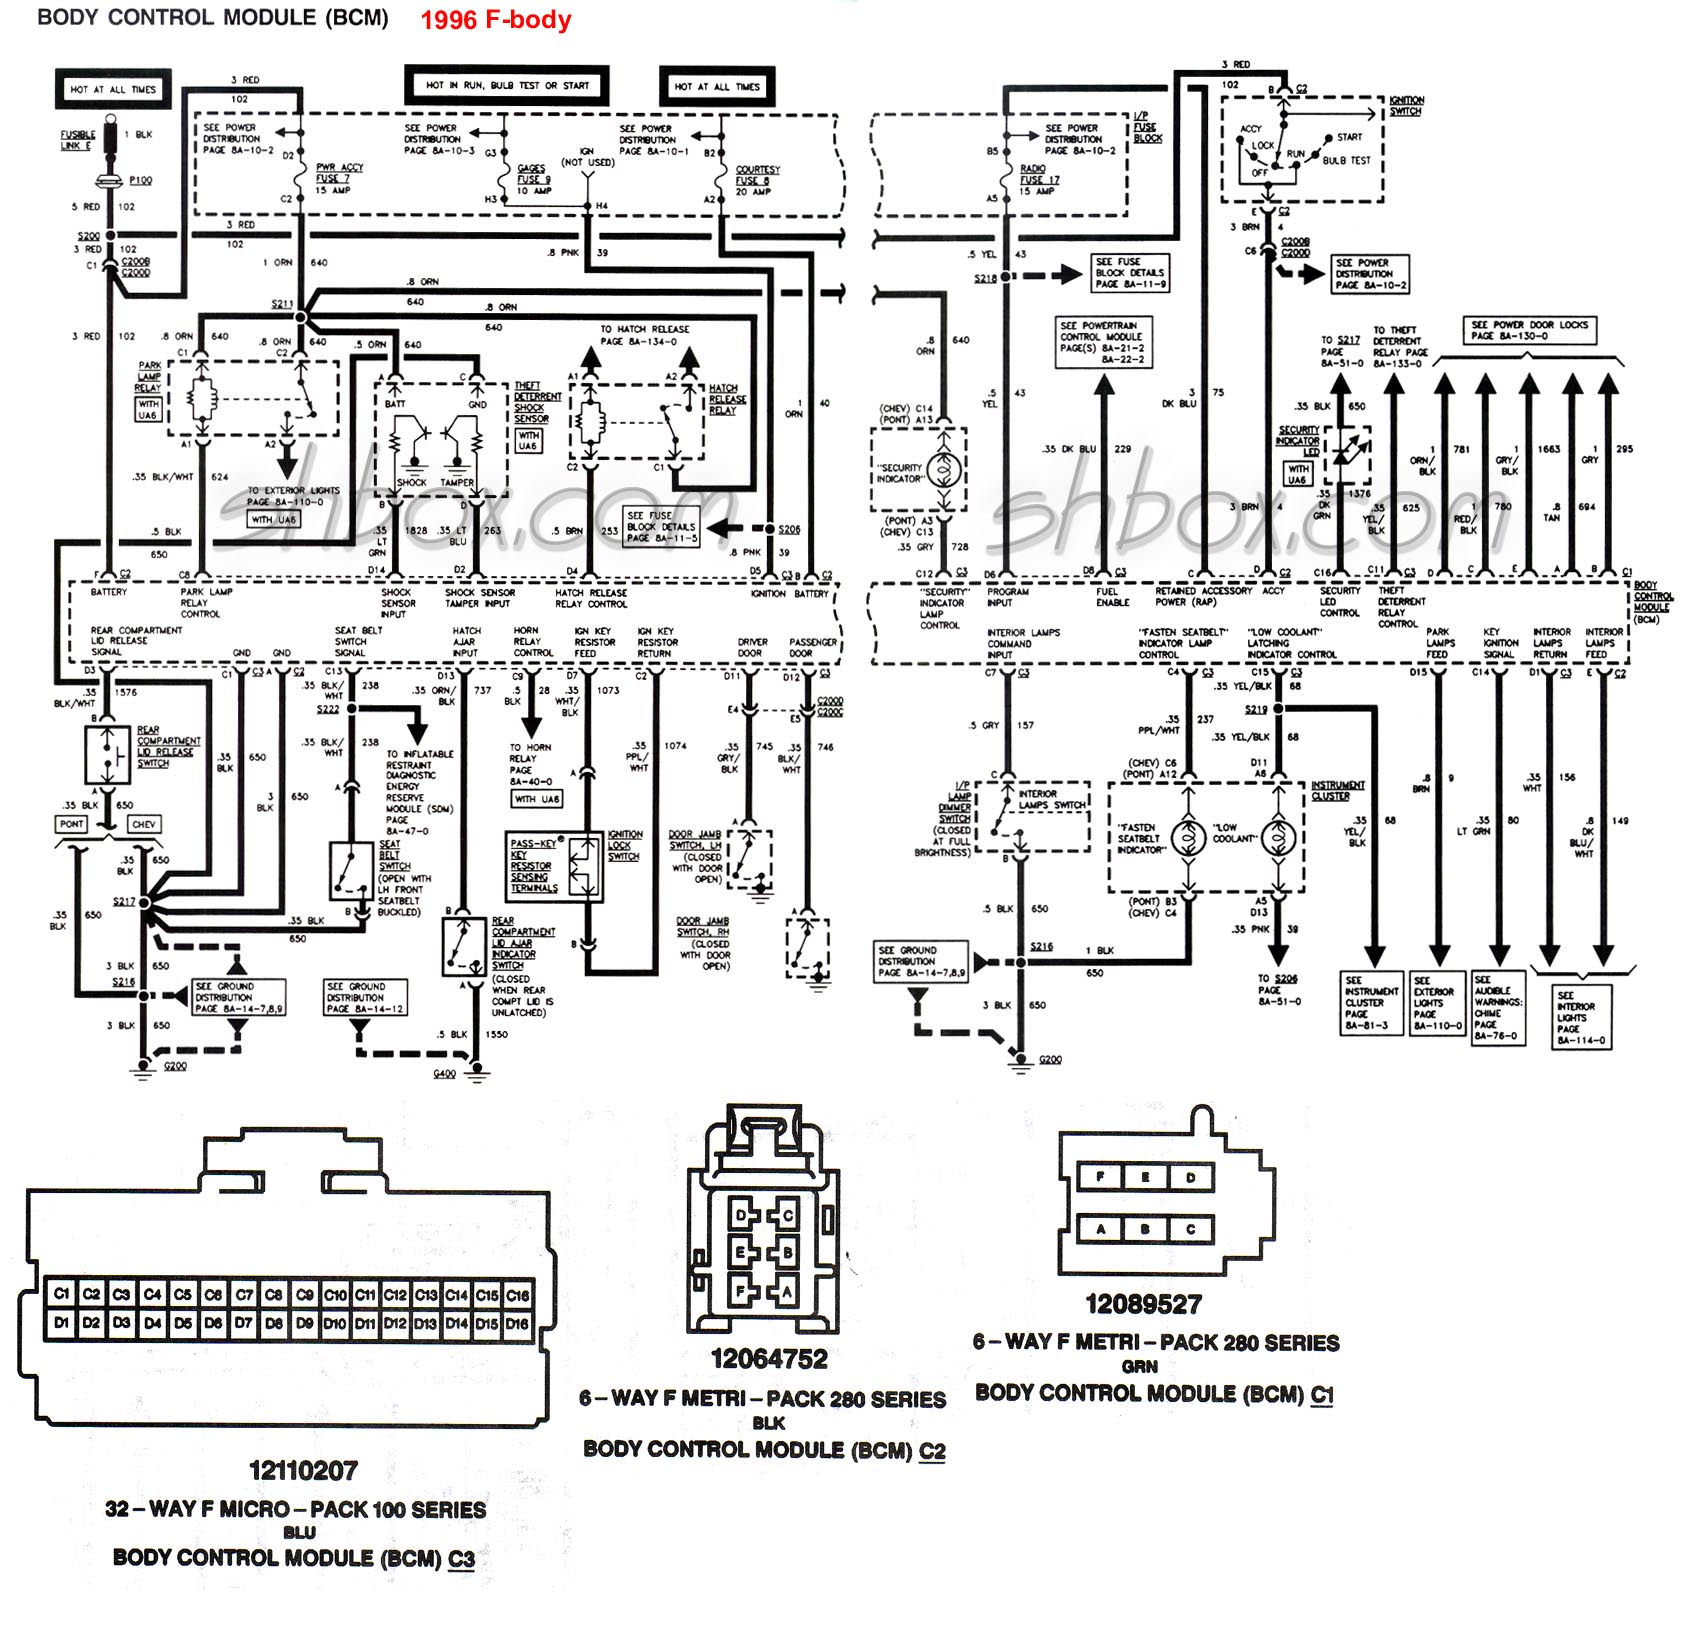 bcm wiring diagram 96 lhs